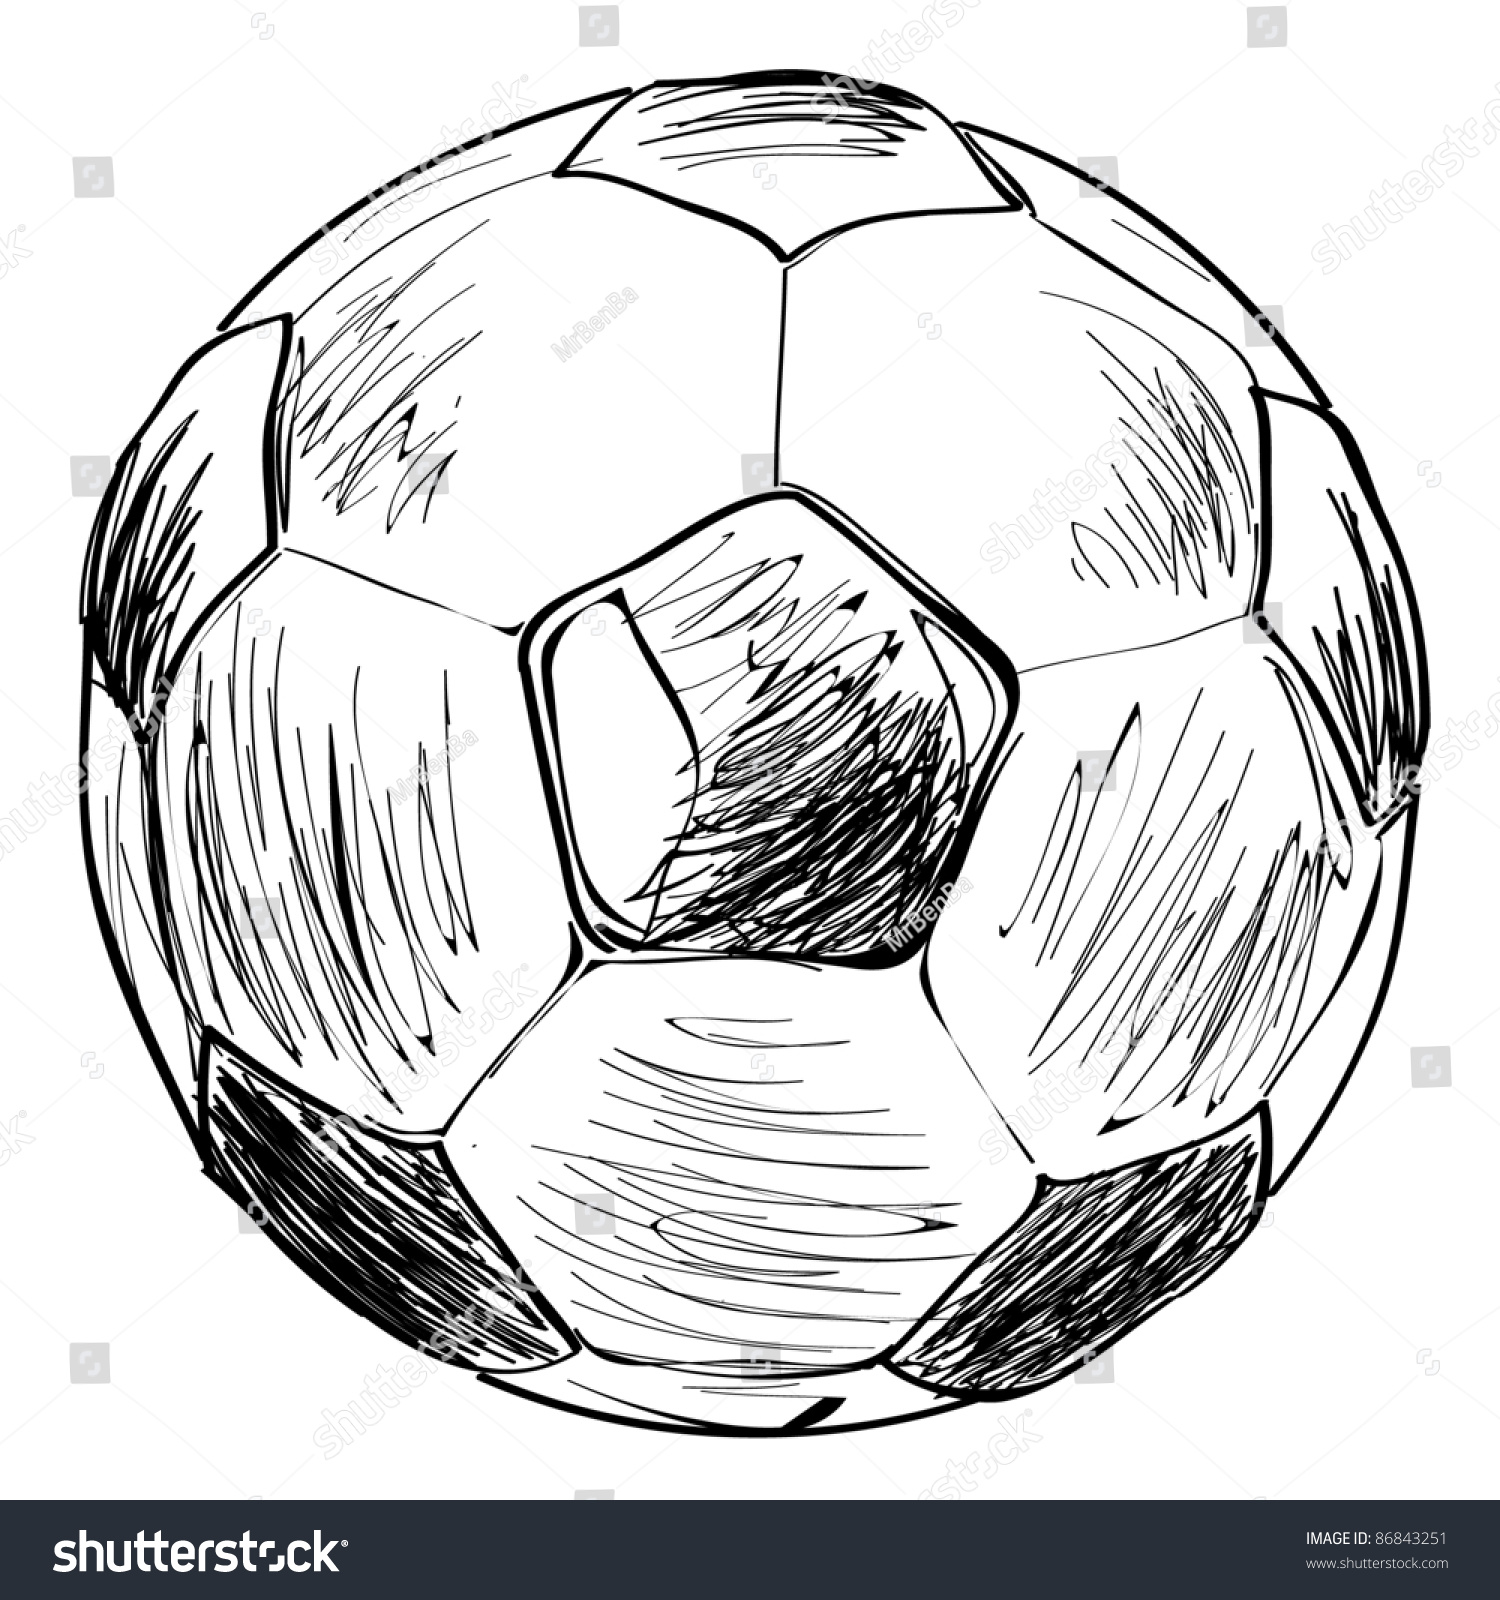 Football soccer ball sketch vector illustration stock for Sketch online free